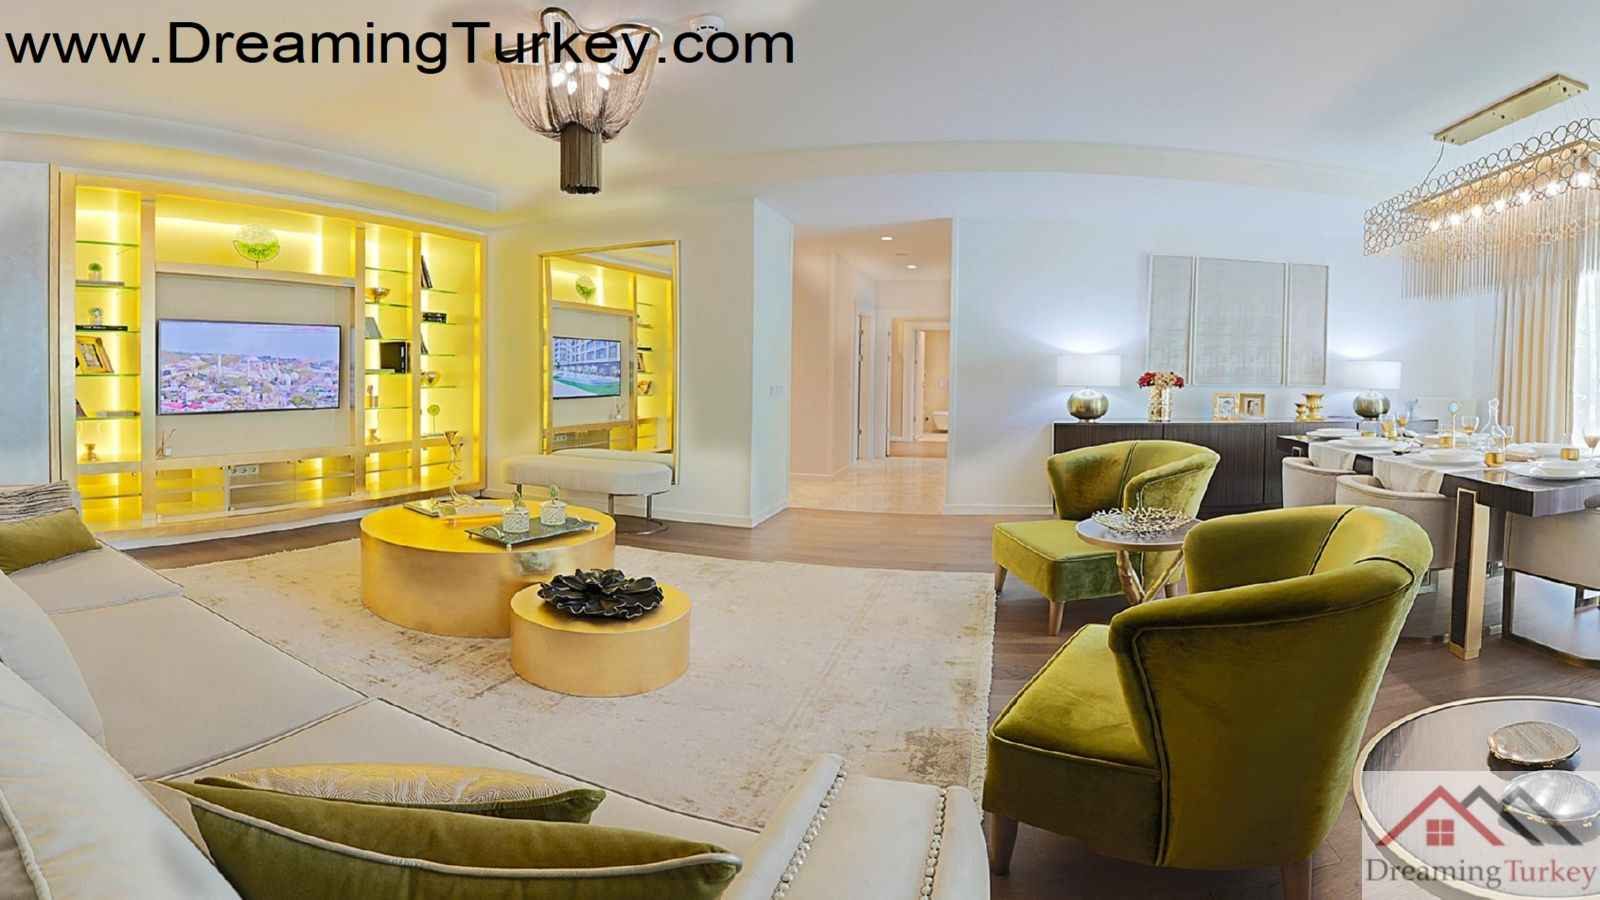 4-Bedroom Residence in a Luxury Complex with an Artificial Lake